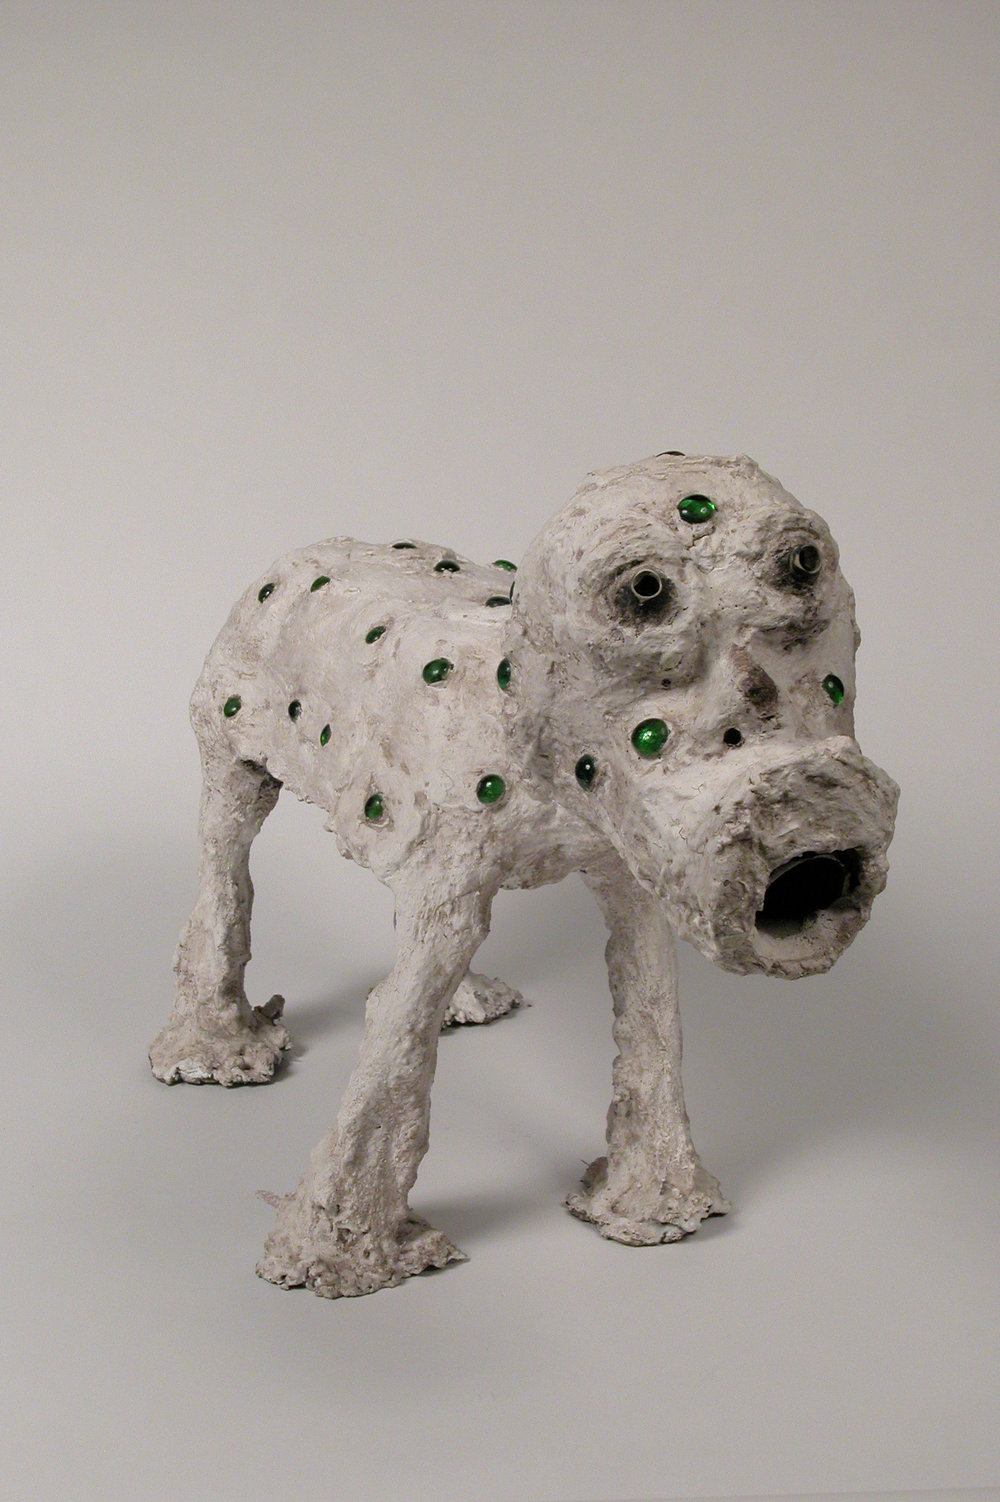 Dr. Charles Smith (American, b. 1940).  Spot , ca. 1986-2002. Concrete, mixed media, and paint, 21 x 7 x 29 in. Intuit: The Center for Intuitive and Outsider Art, gift of Kohler Foundation, Inc.,  2004.2.1